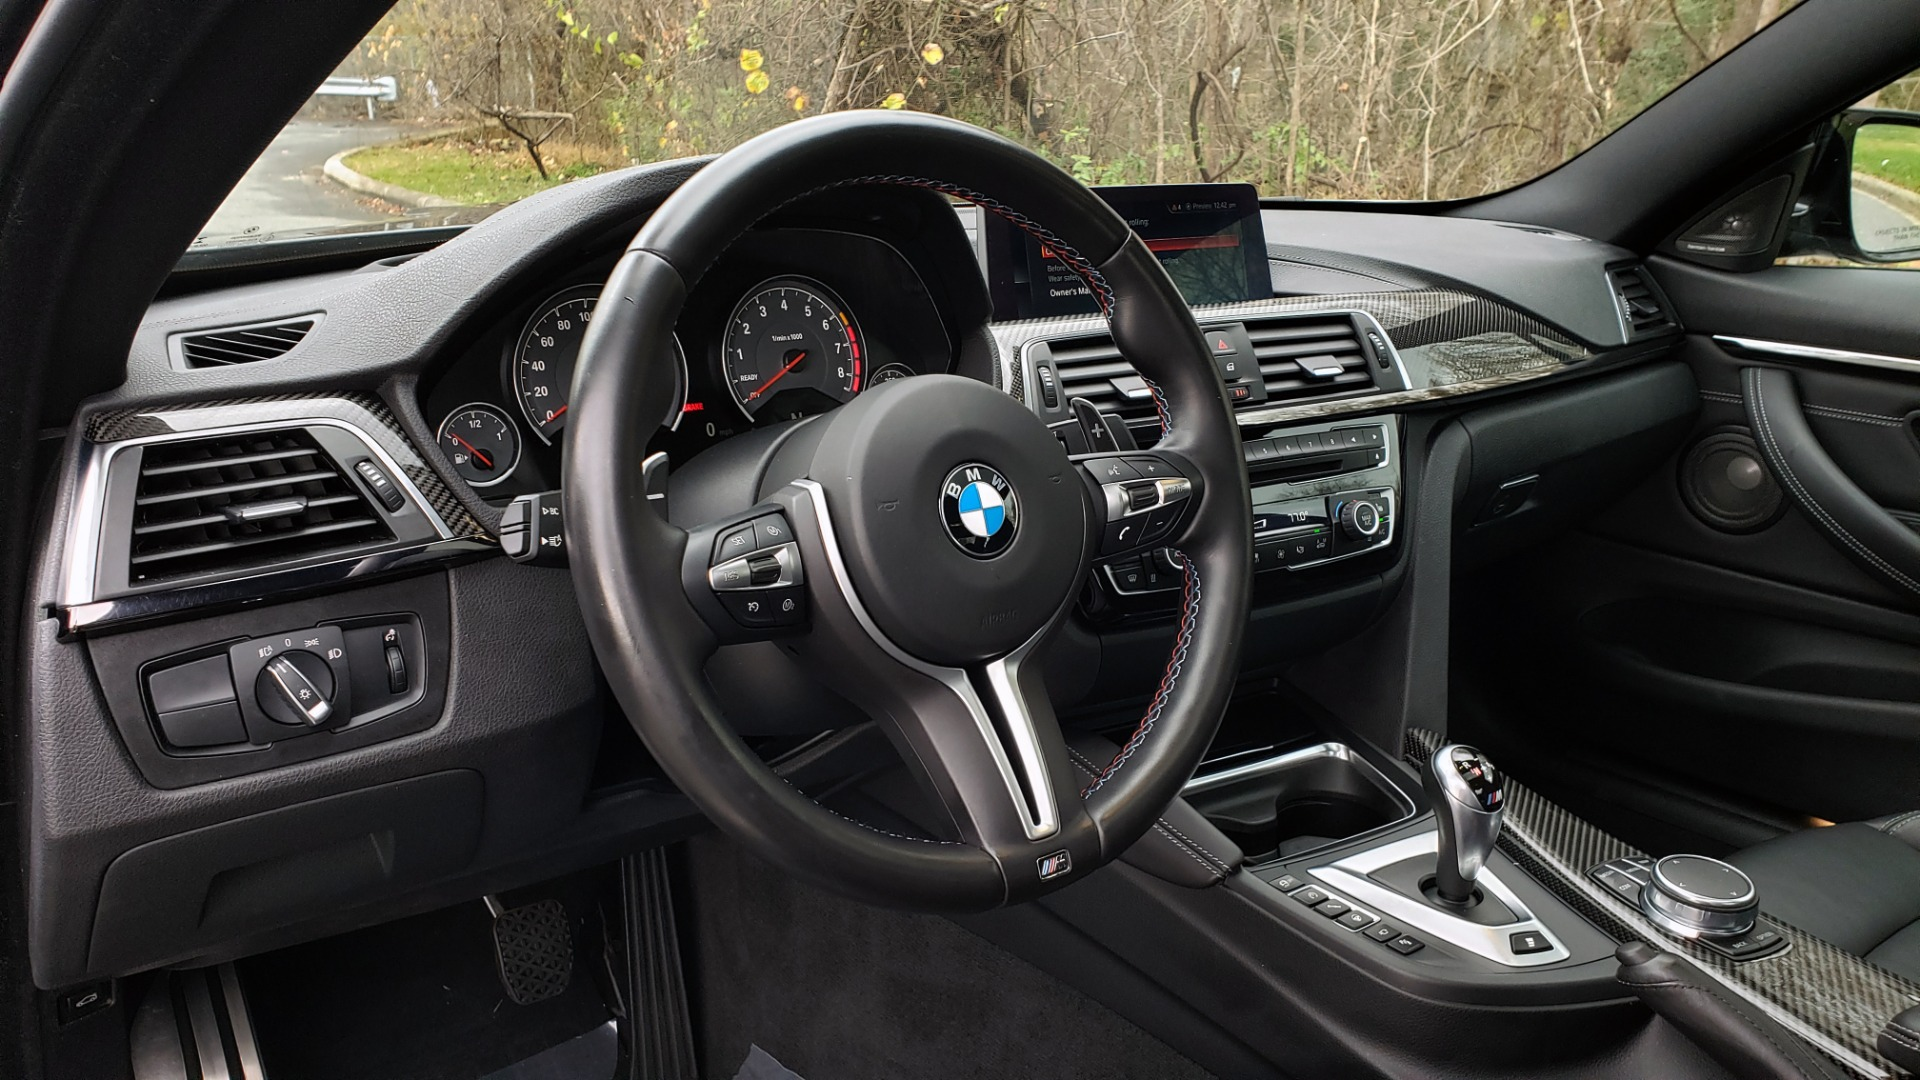 Used 2018 BMW M4 M-COMP / EXEC PKG / 7-SPD DBL CLUTCH / NAV / REARVIEW for sale Sold at Formula Imports in Charlotte NC 28227 20